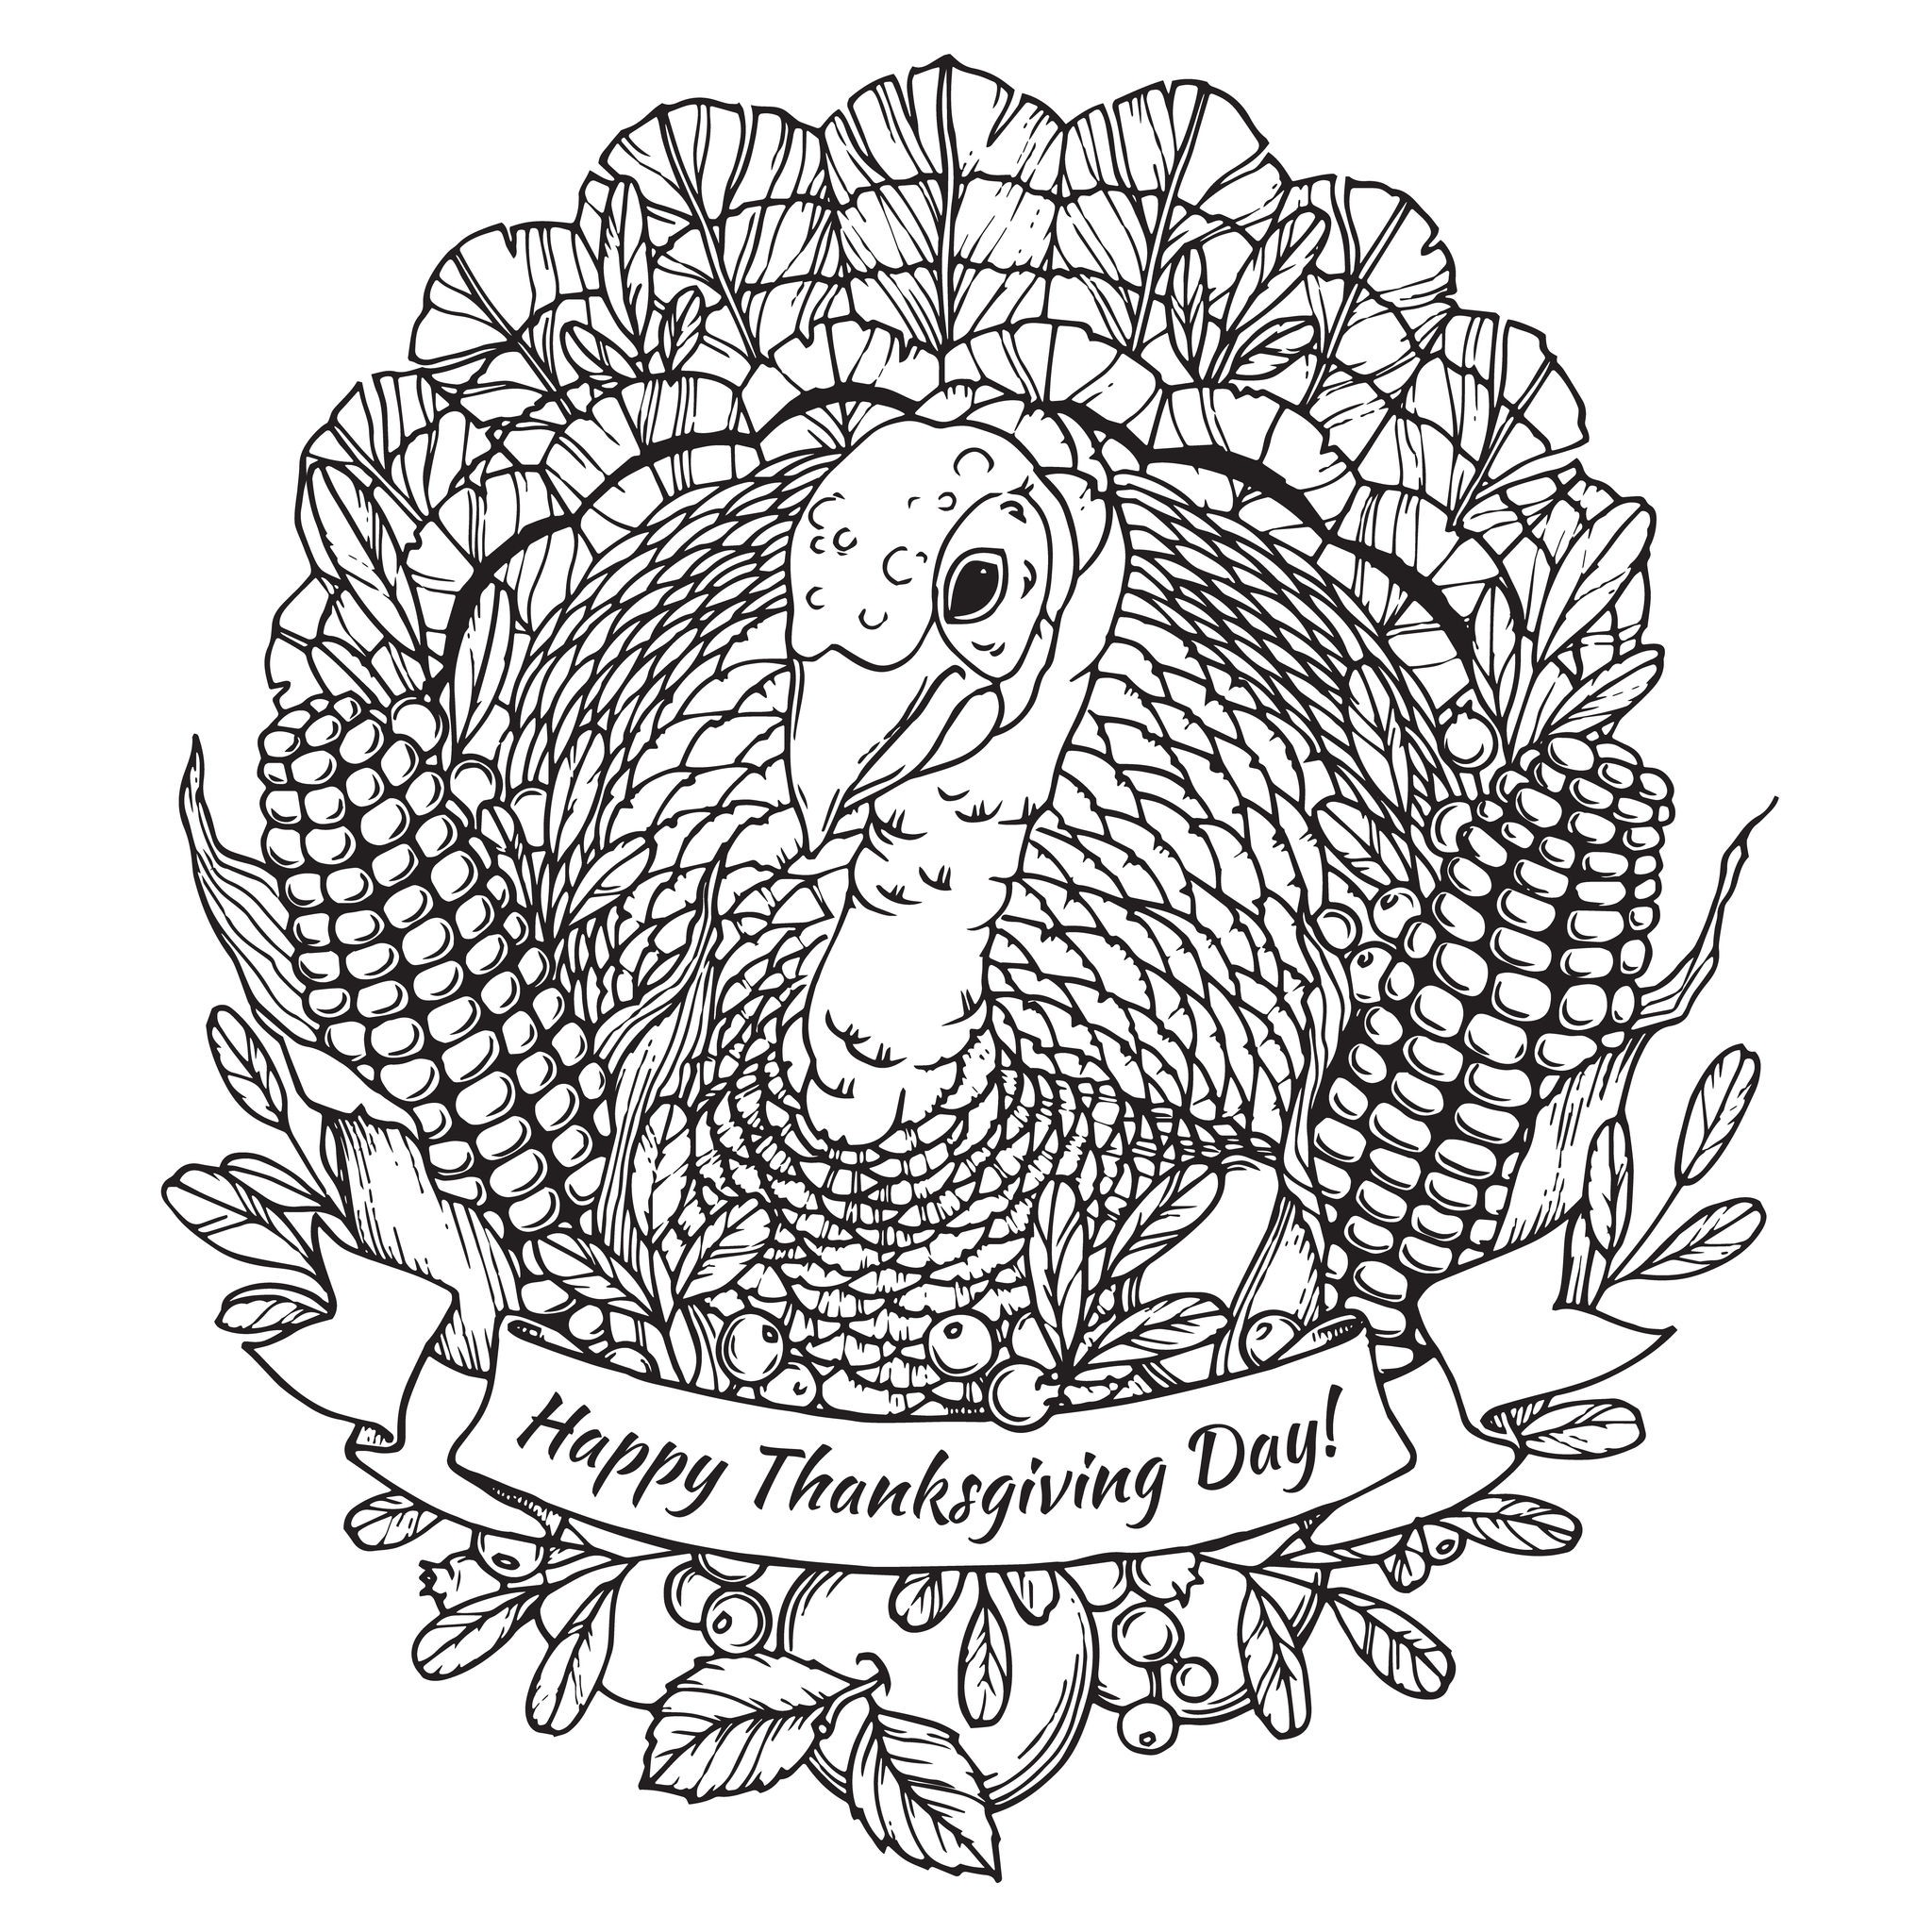 turkey-coloring-pages-for-adults-of-turkey-coloring-pages-for-adults Turkey Coloring Pages for Adults Animal